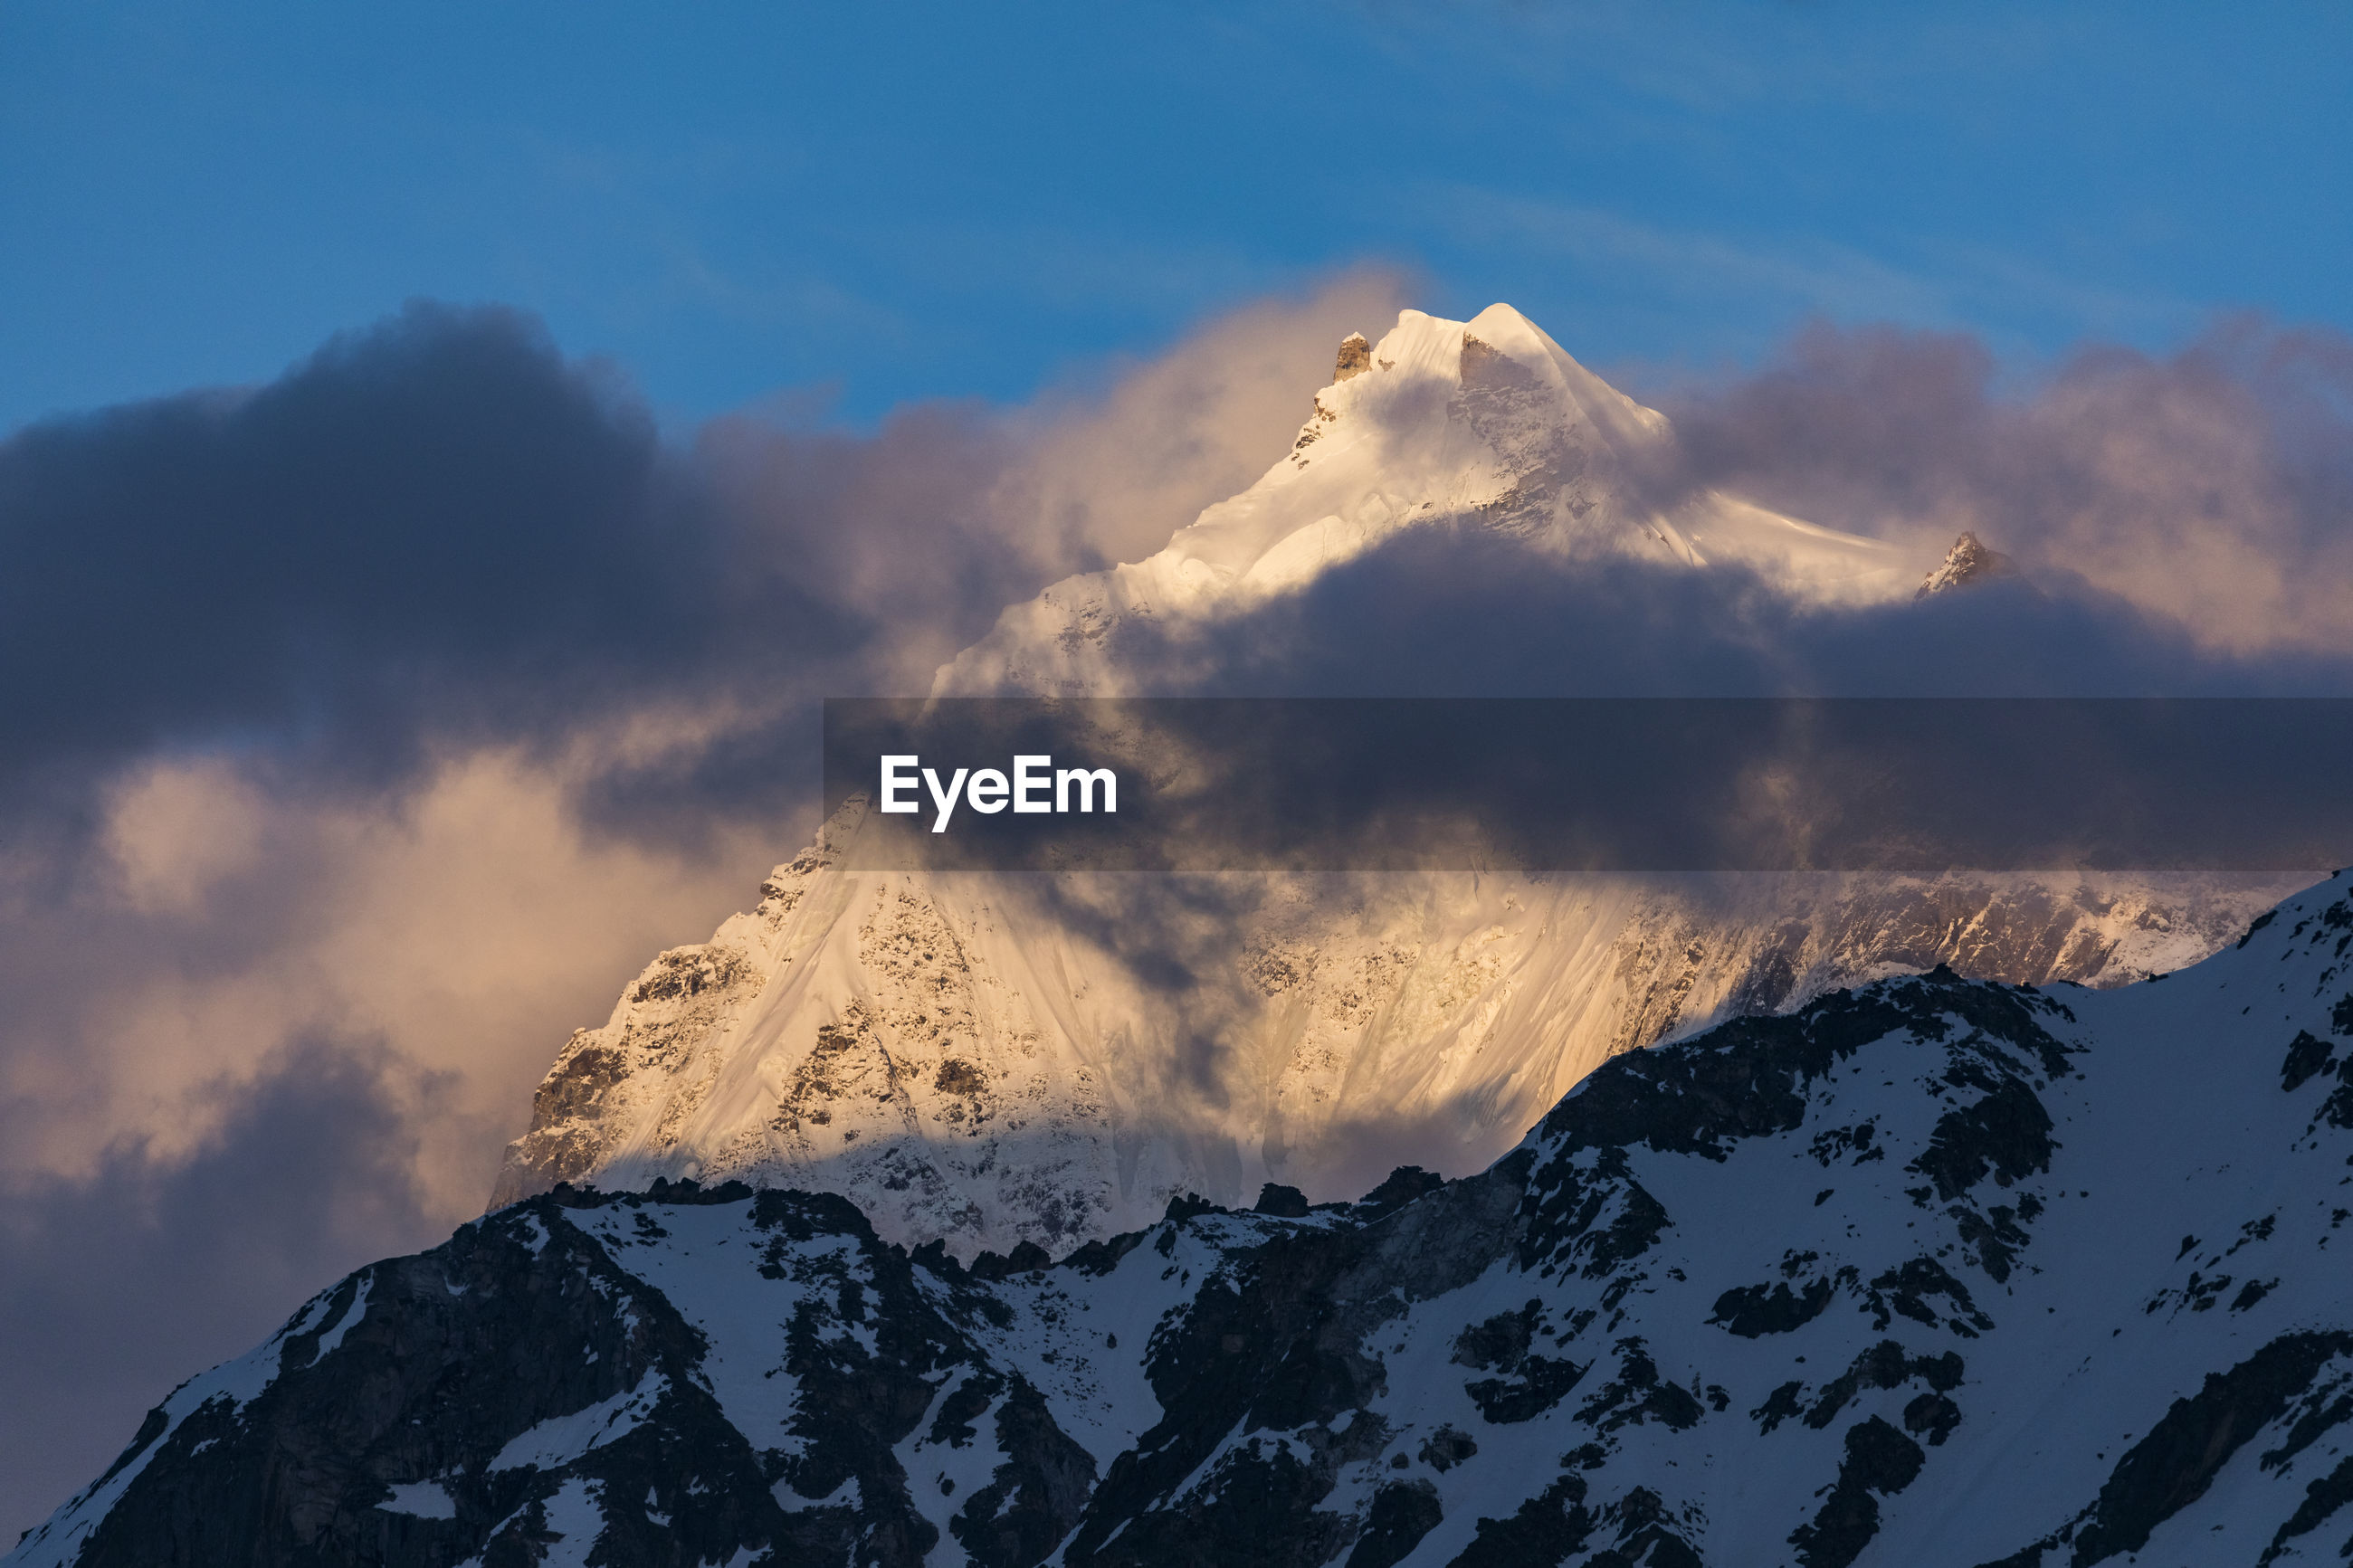 SCENIC VIEW OF SNOWCAPPED MOUNTAIN AGAINST SKY DURING WINTER